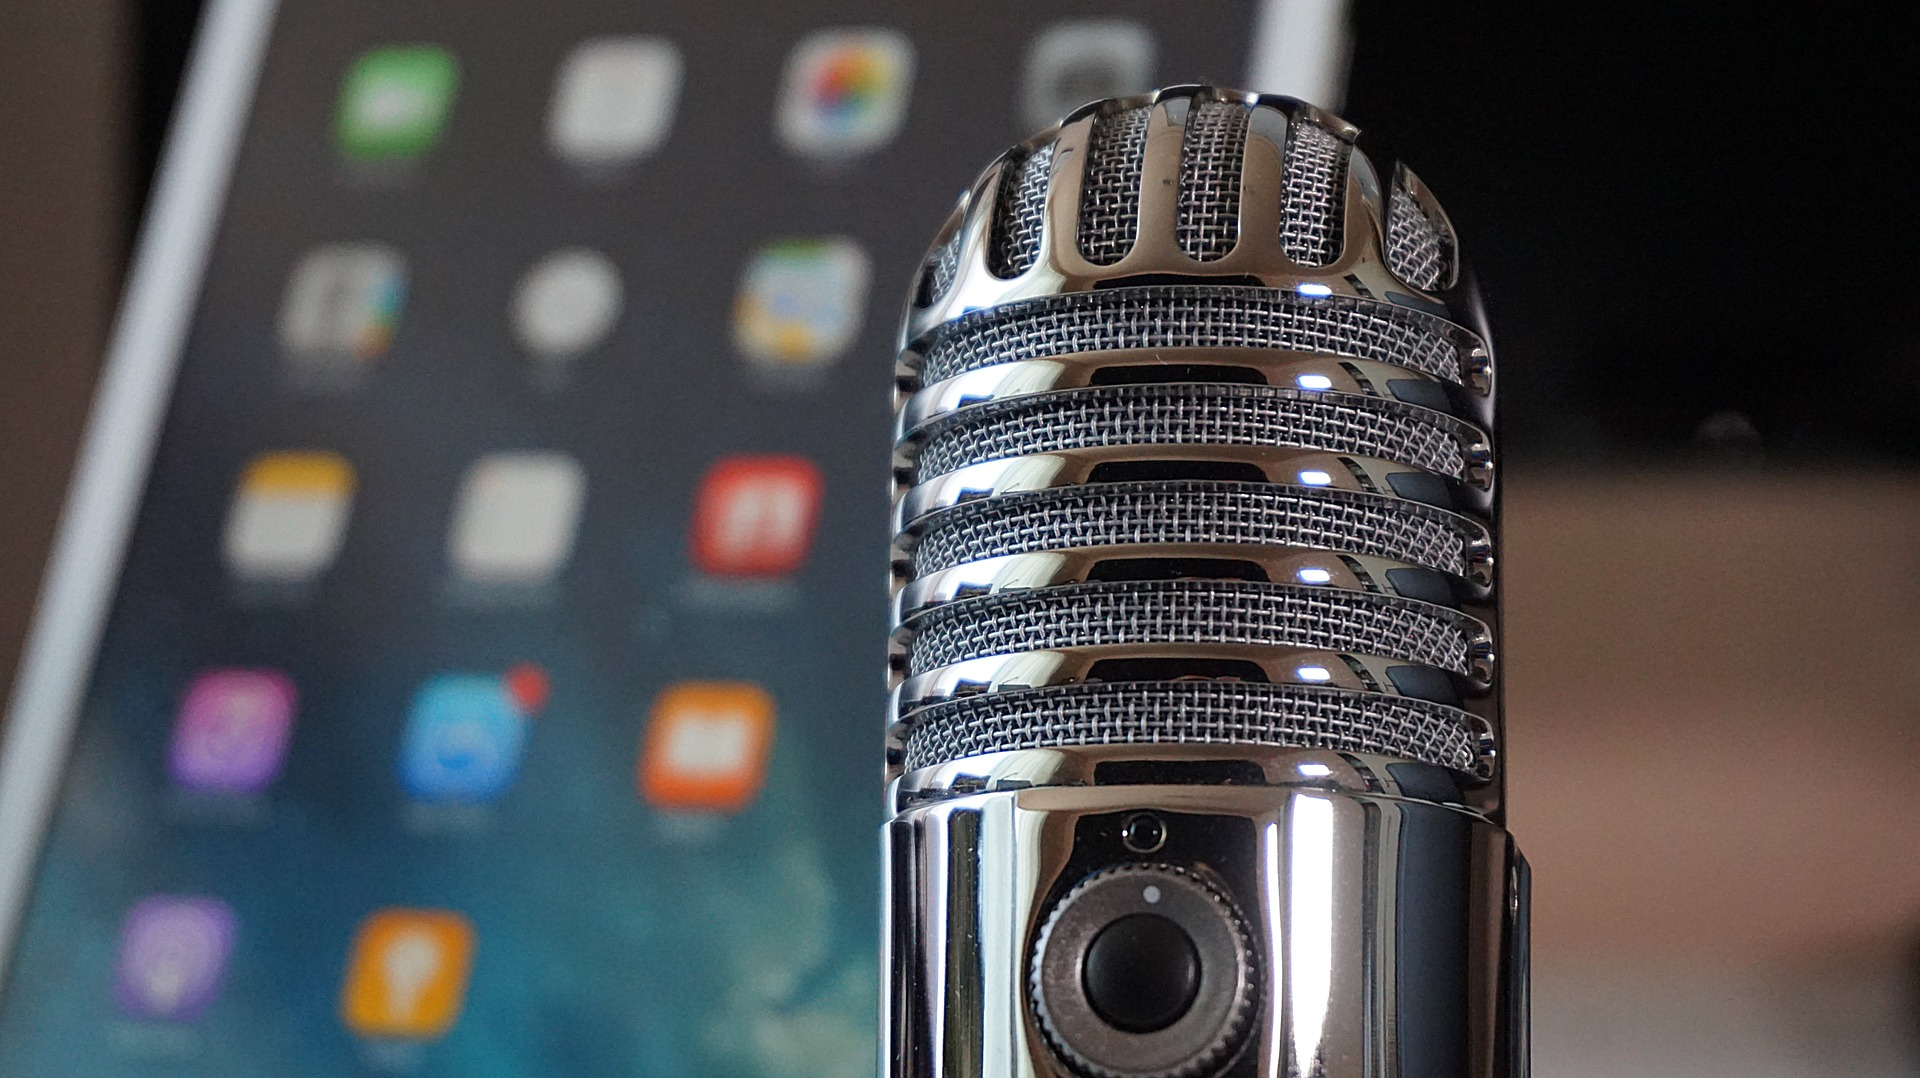 Podcast_pixabay_microphone-2469295_1920.jpg